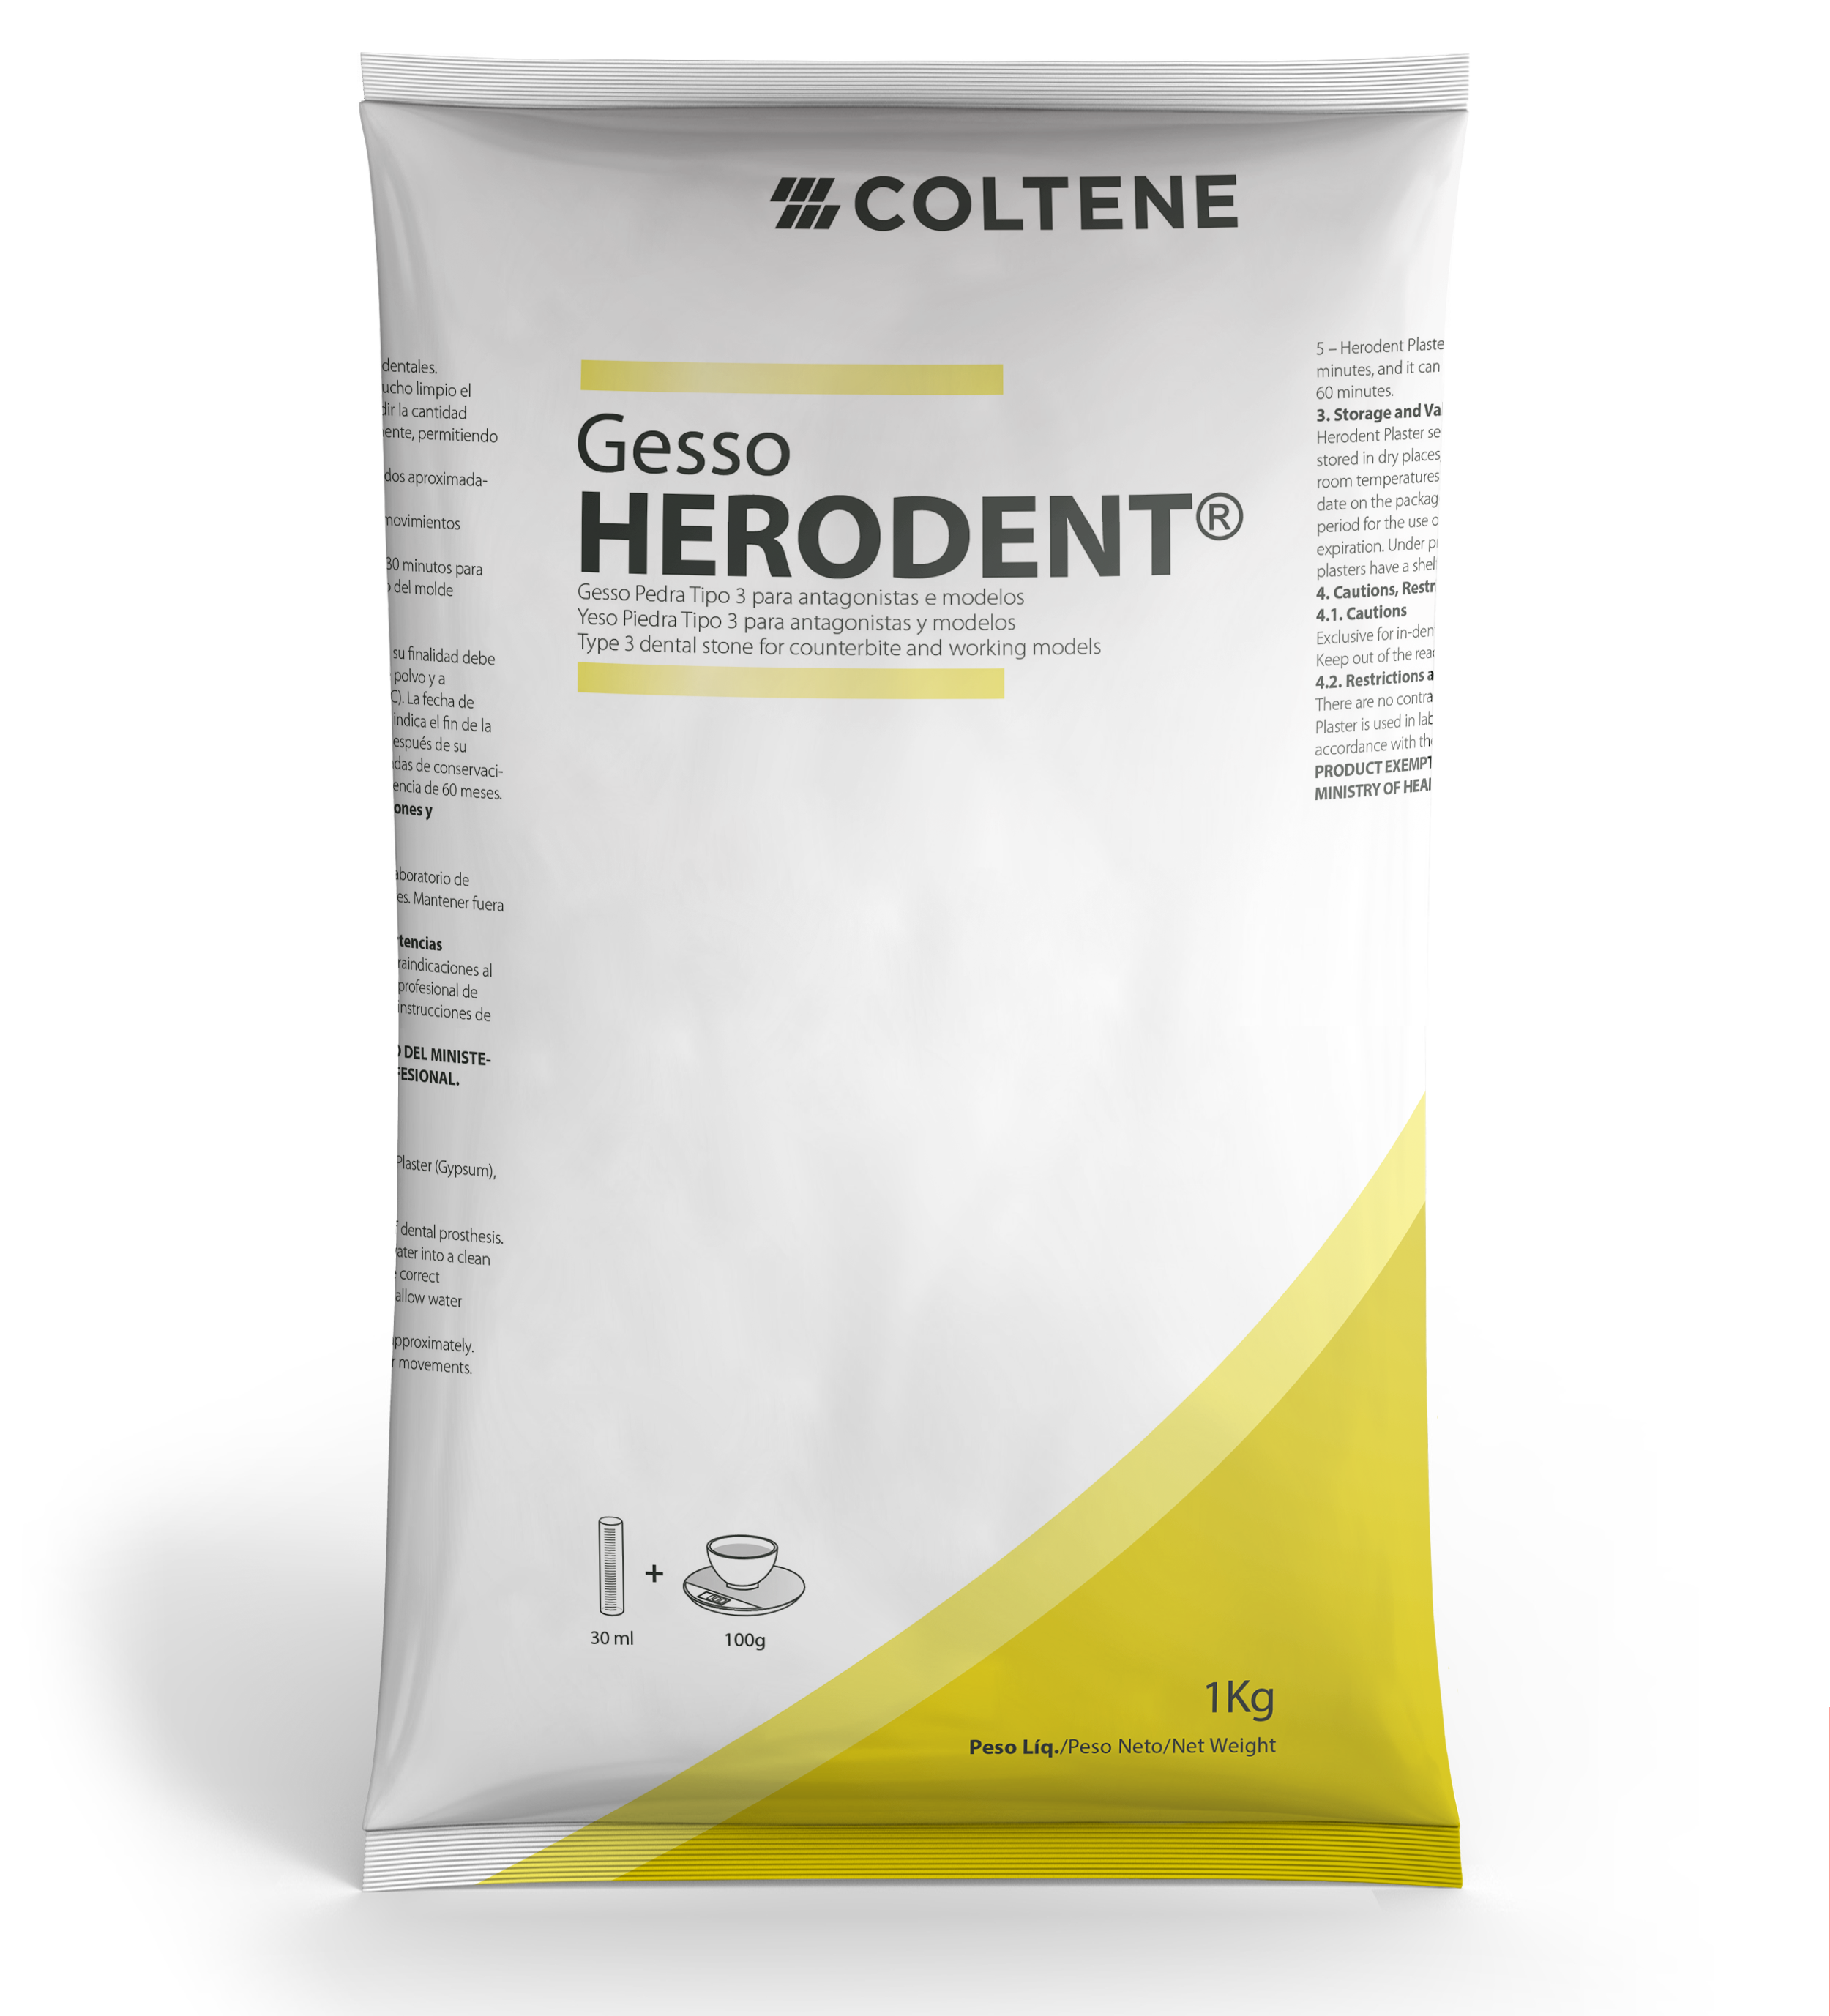 Gesso Herodent